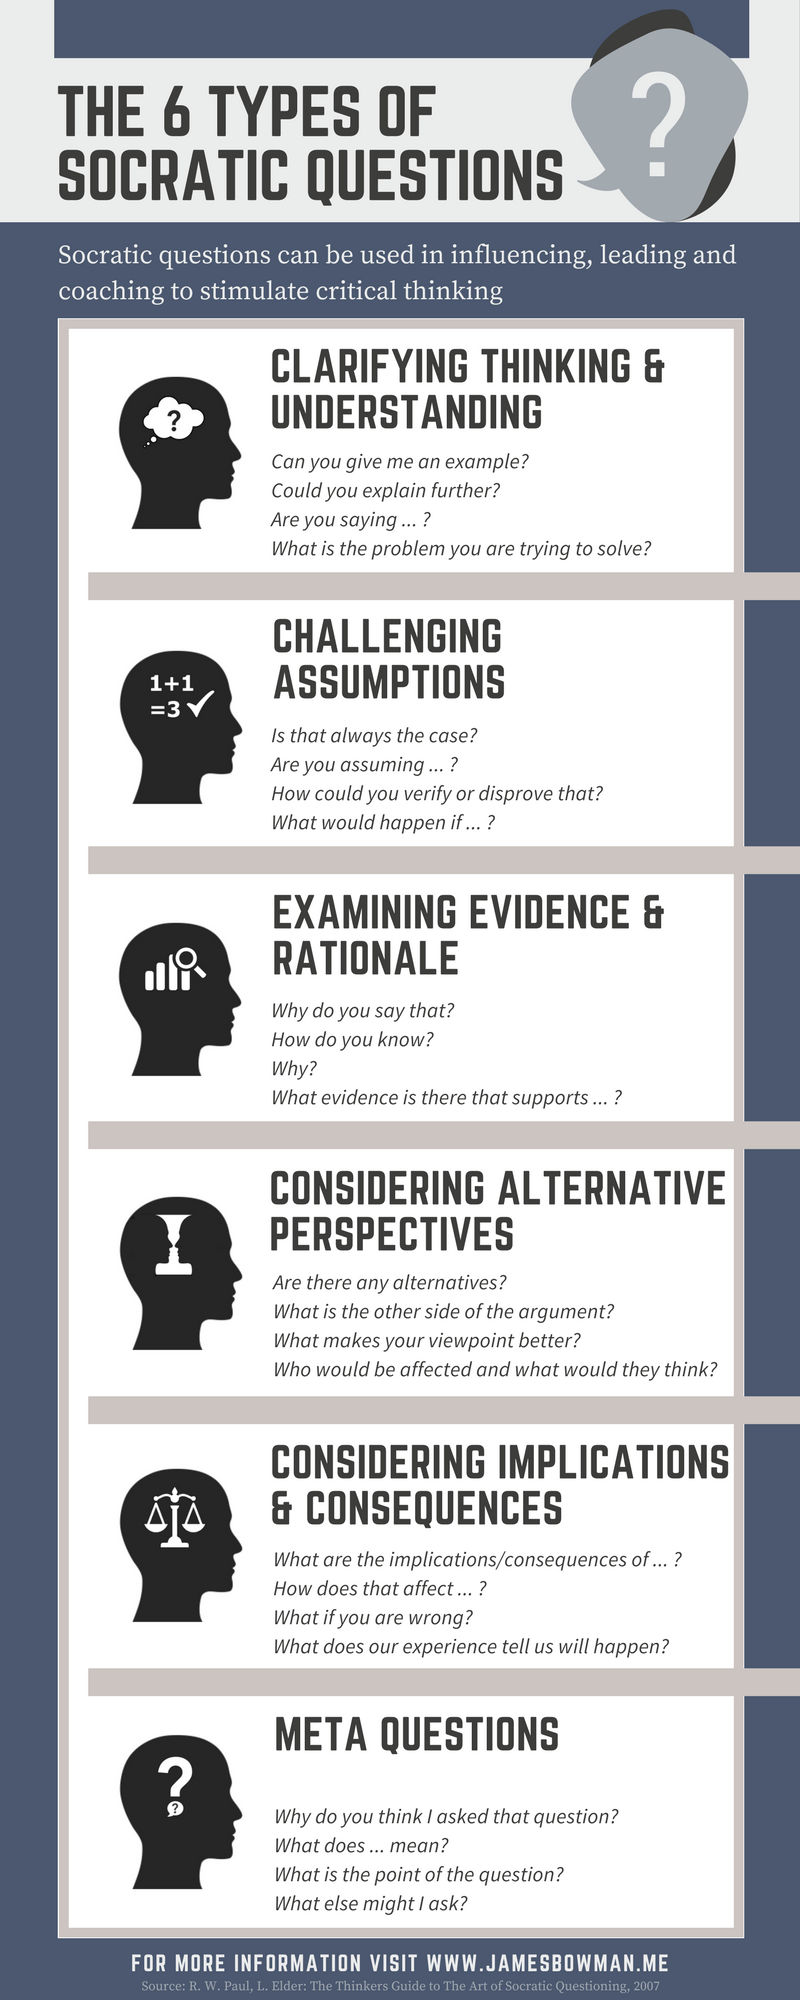 socratic-questions-infographic.png